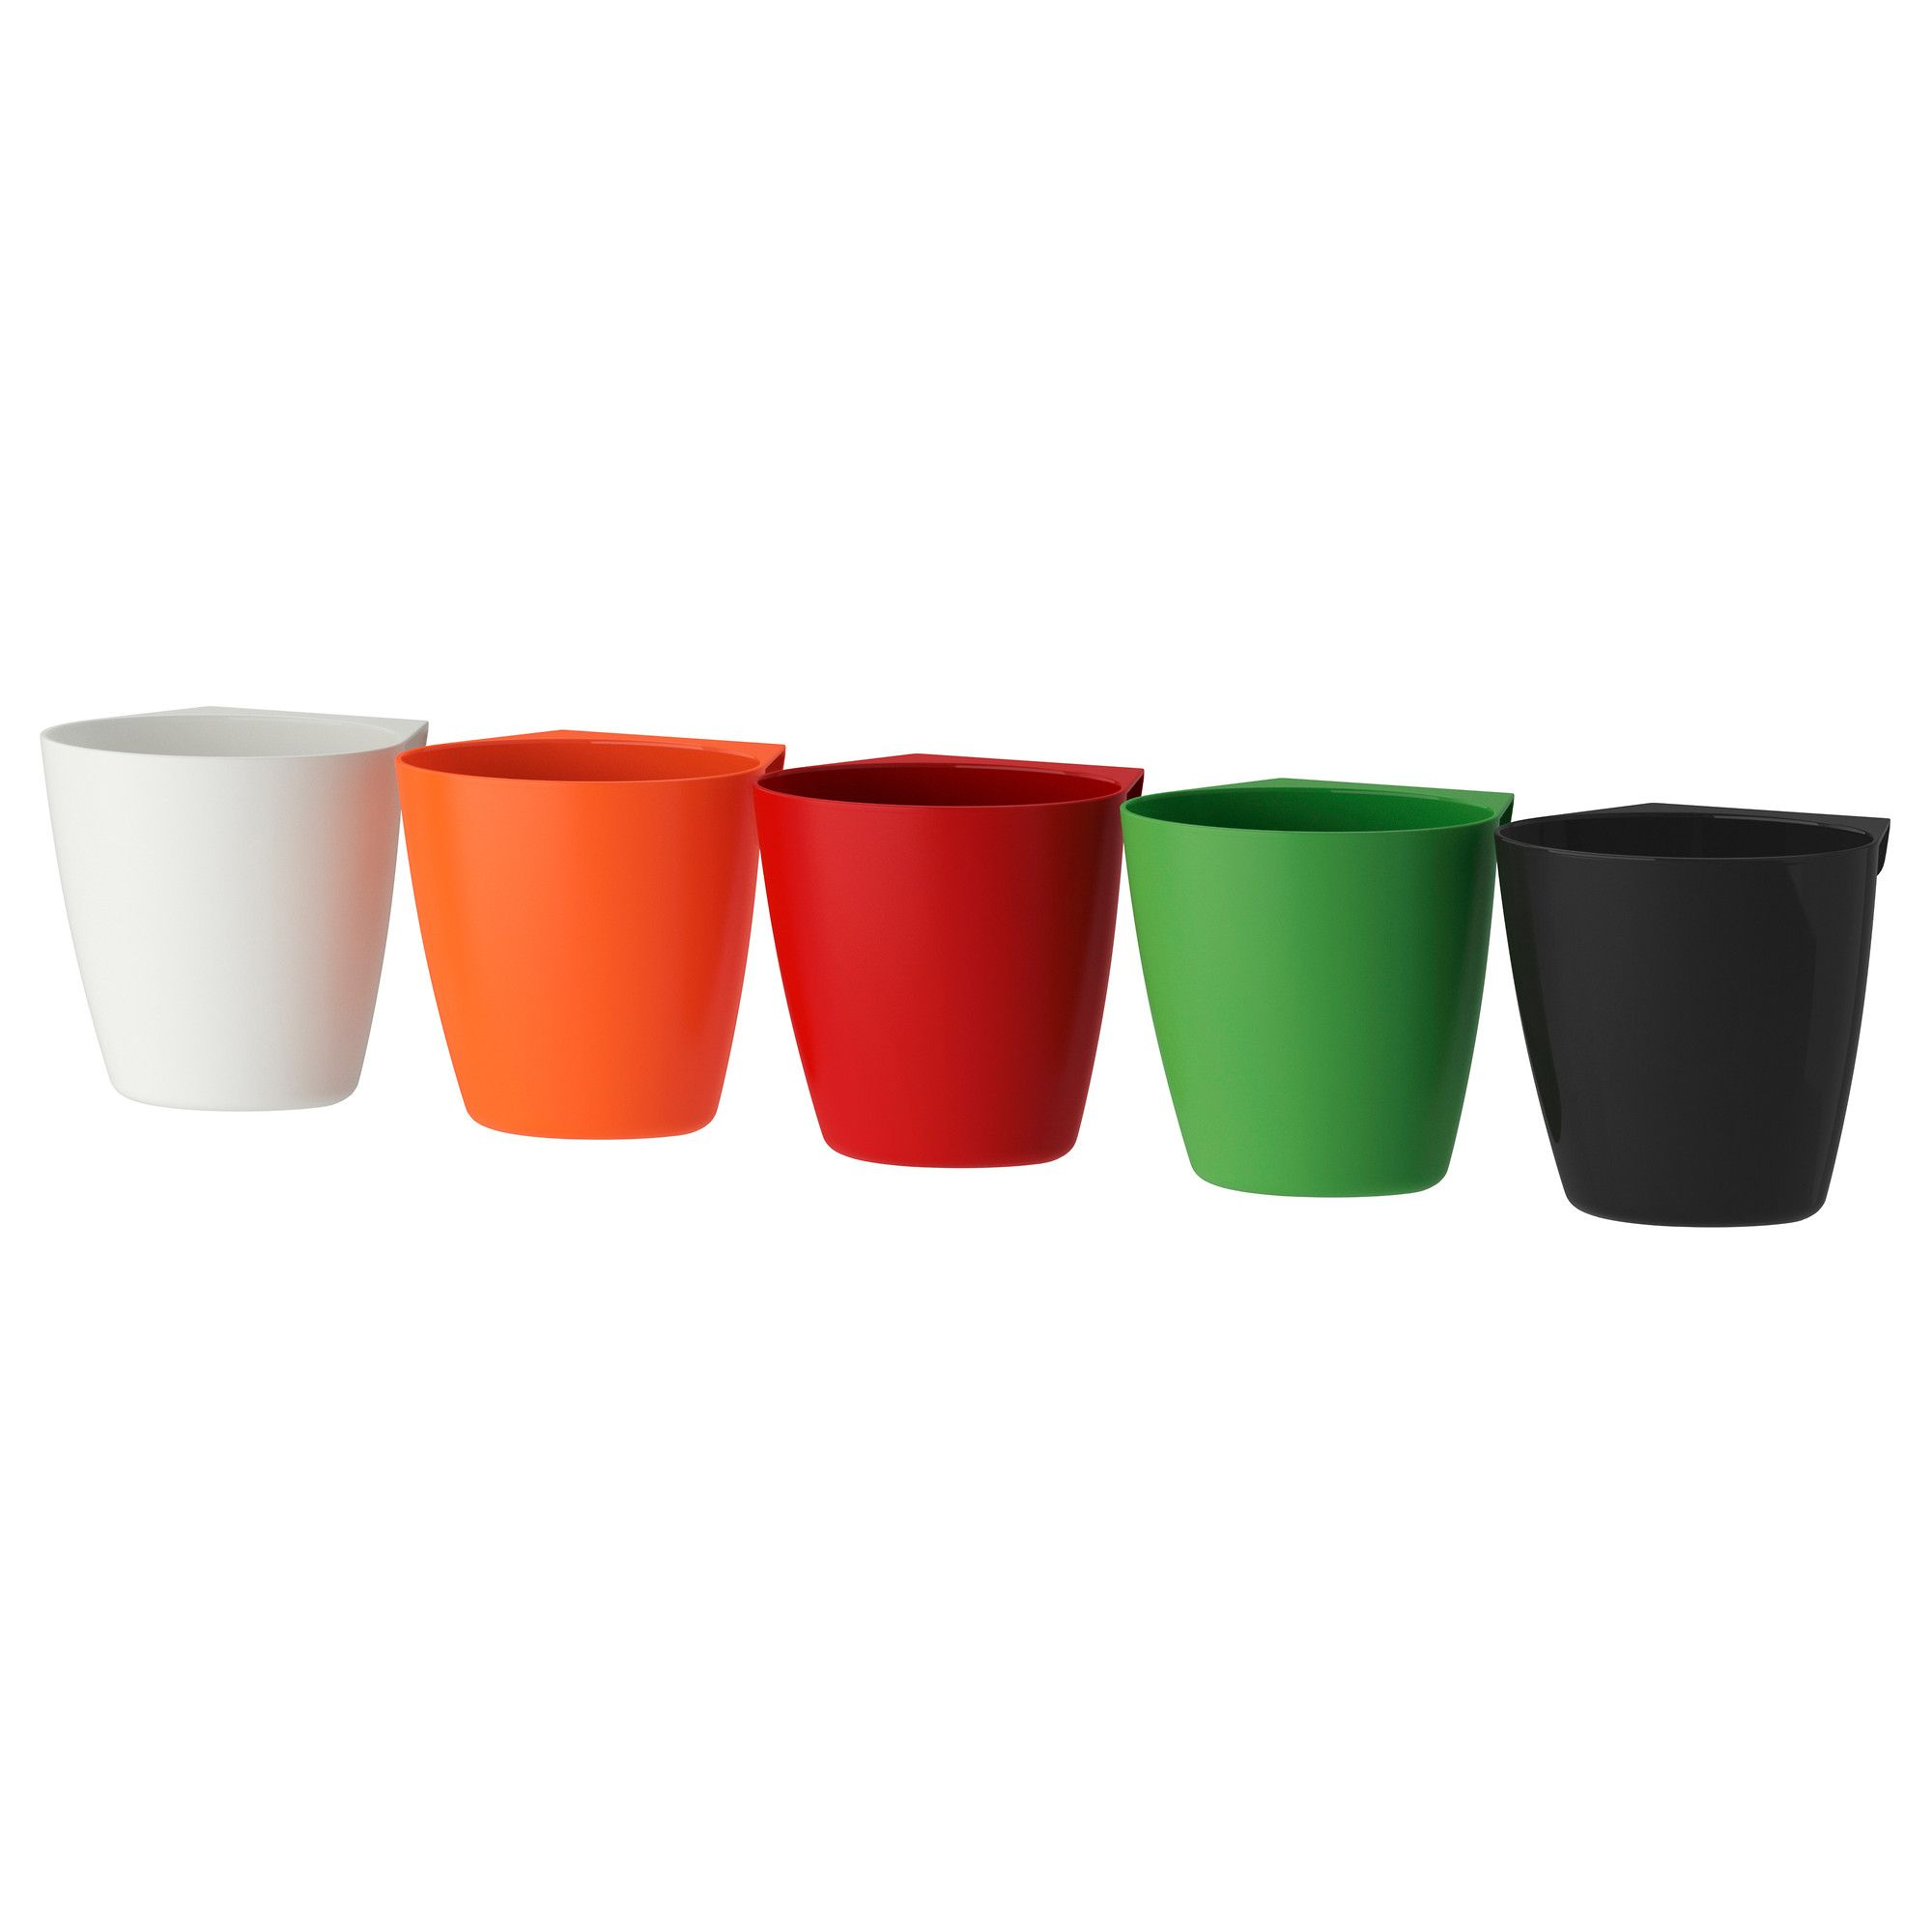 Bygel Behälter Bygel Container Ikea I Also Have One Of These Containers Hanging